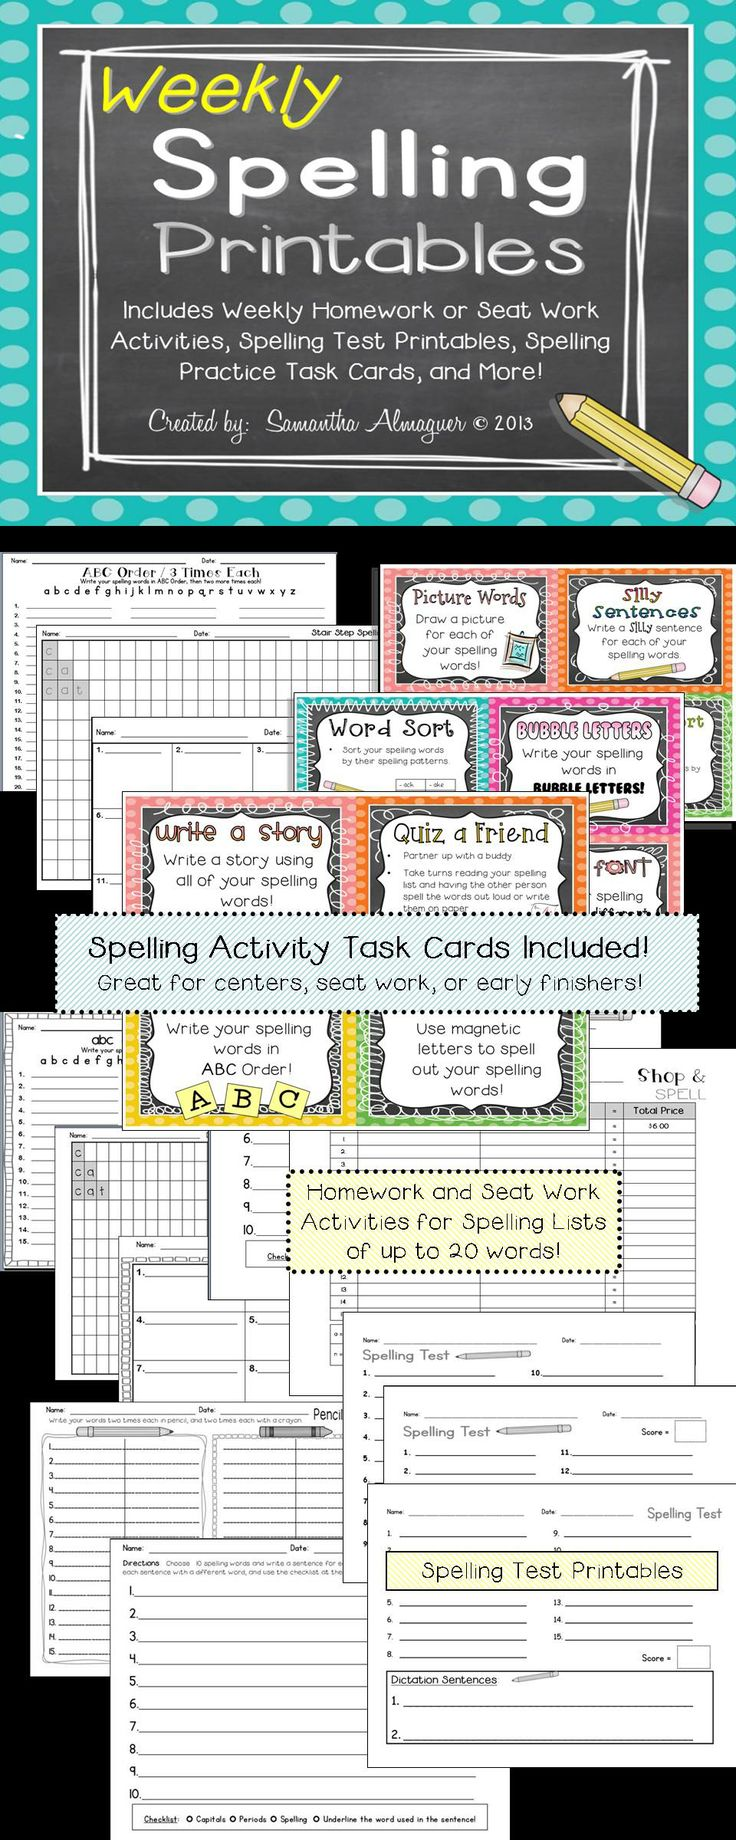 Great spelling activities for lists of up to 20 words, Spelling Test Templates, and Spelling Activity Task Cards!  Everything you need all in one spot, and only $3.00!